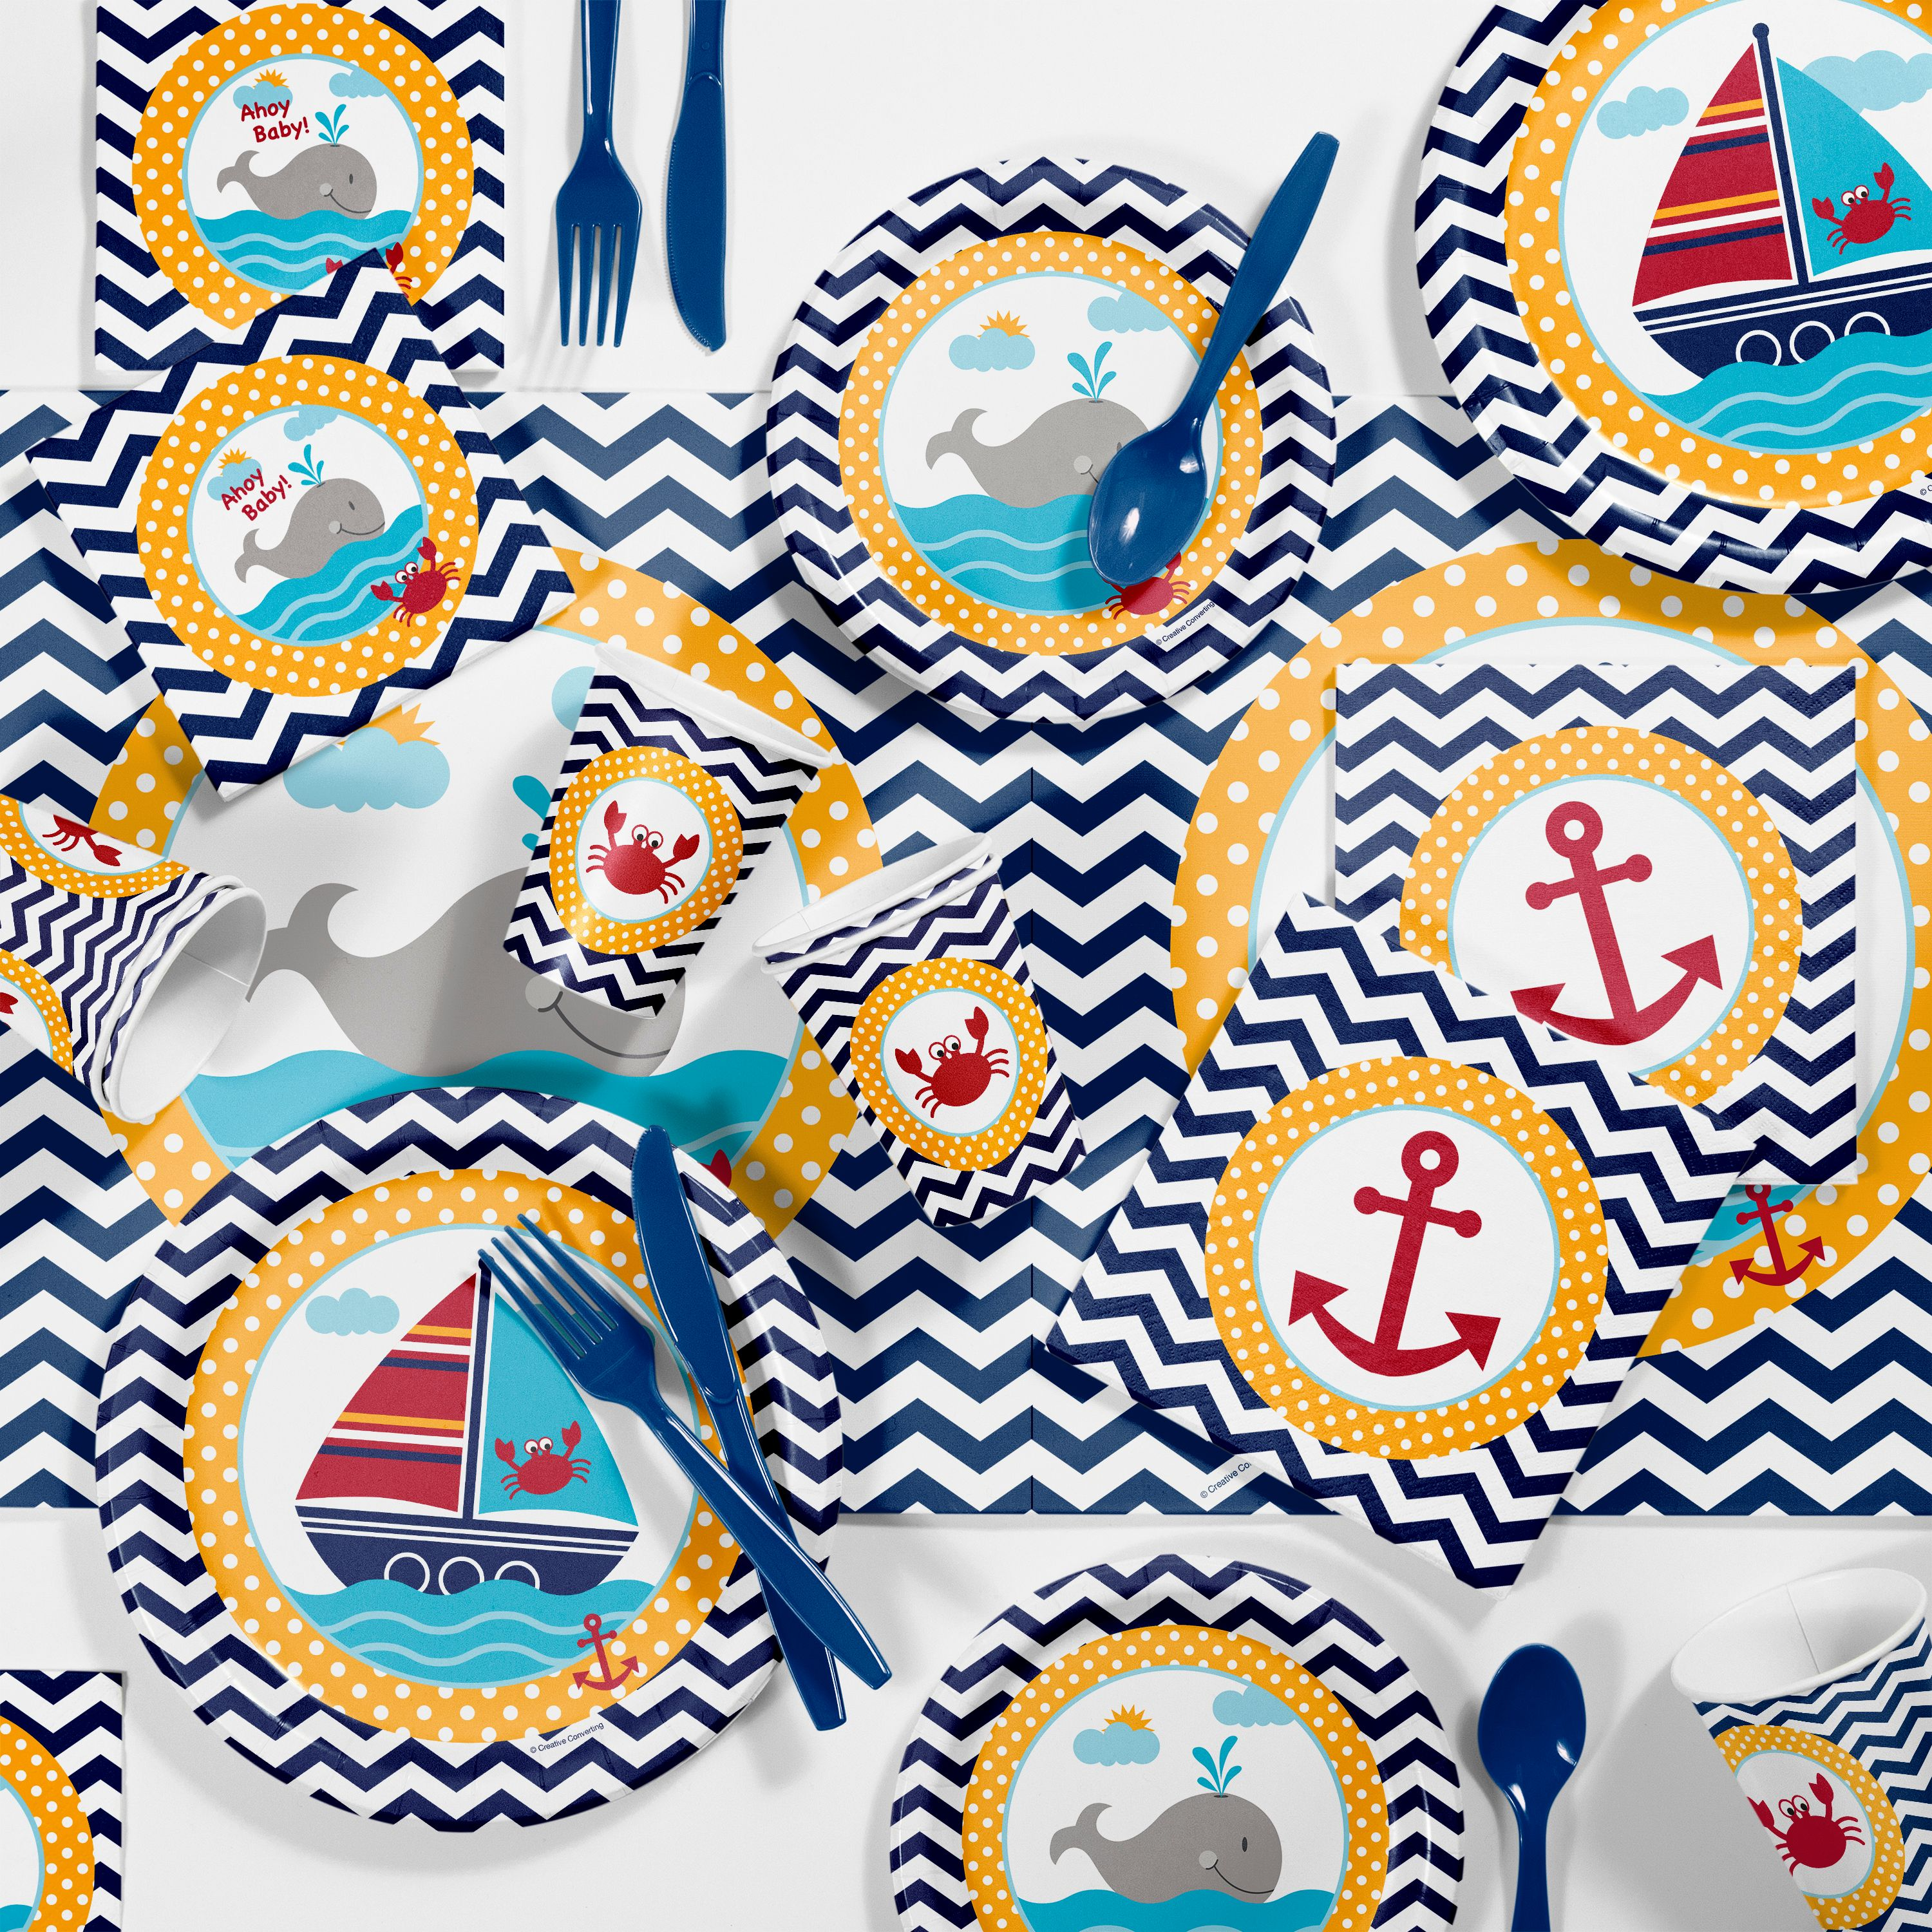 Ahoy Matey Nautical Baby Shower Kit